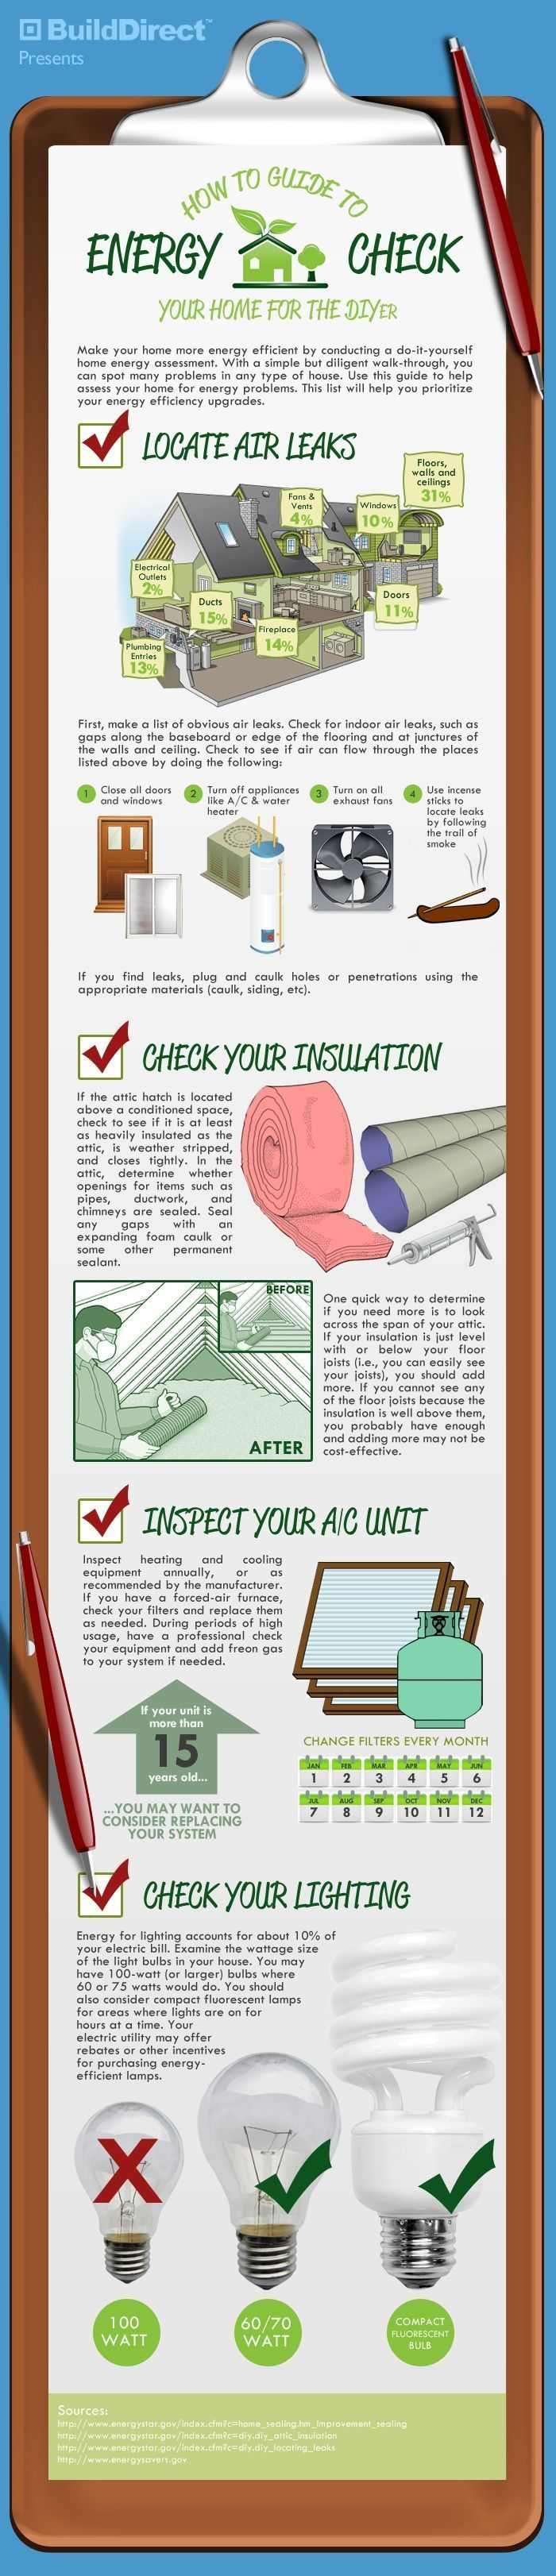 Energy Efficient Home Upgrades in Los Angeles For $0 Down -- Home Improvement Hub -- Via - Great Tips on #energysaving, from loft #insulation through to ideas on checkin for air leaks